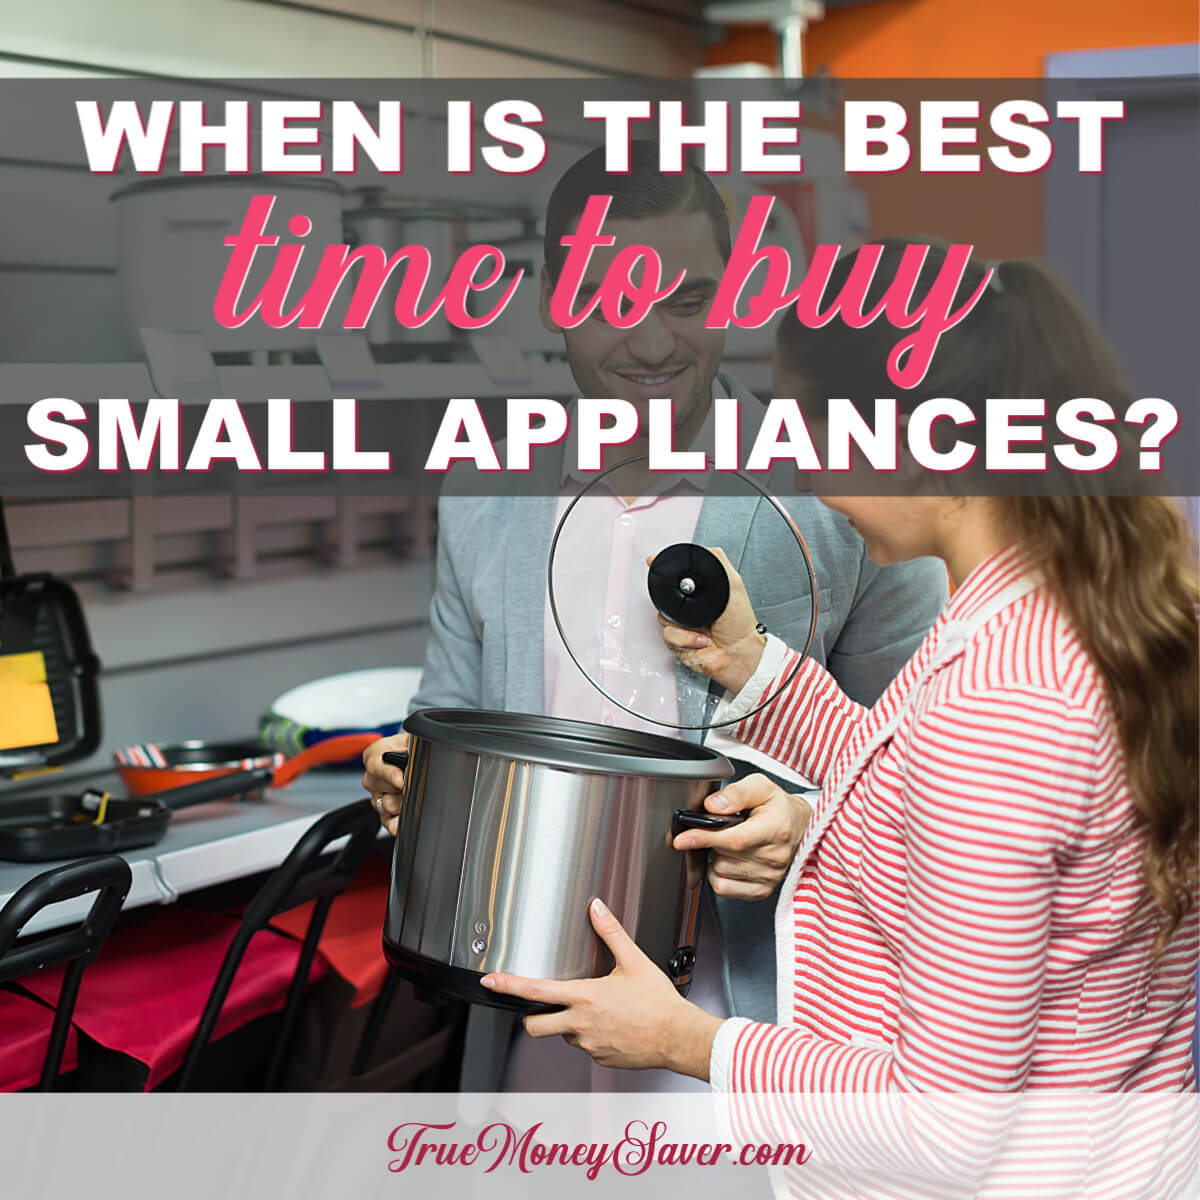 When Is The Best Time To Buy Small Appliances For The Kitchen?